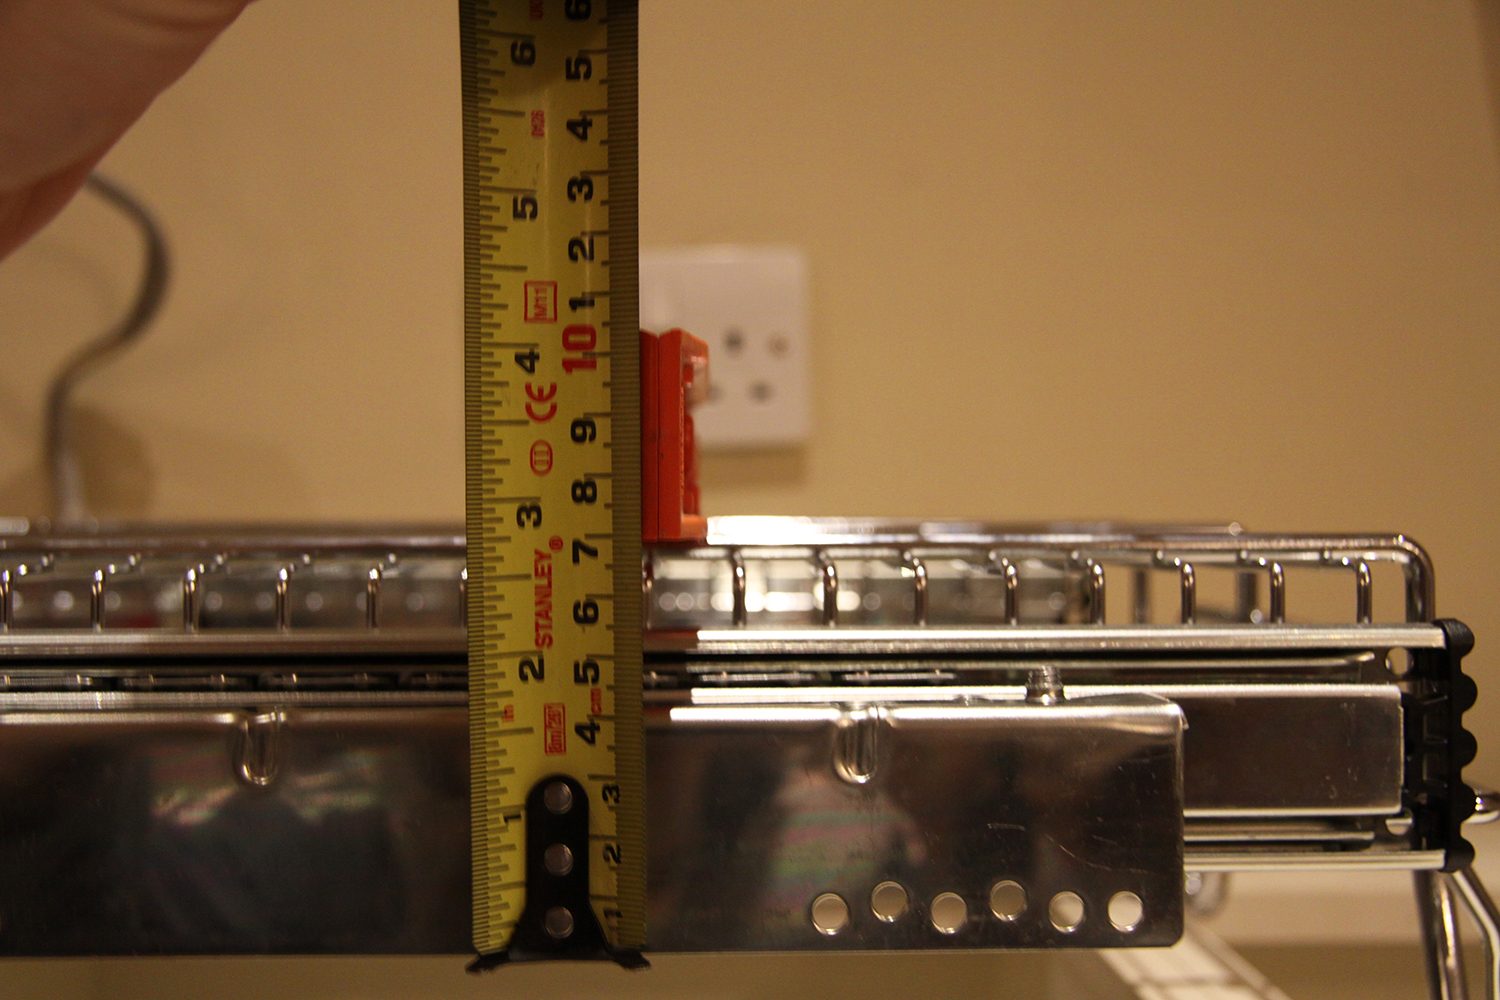 2. Measuring From The Bottom Of The Soft Close Chrome Basket To The Top Of The Runner